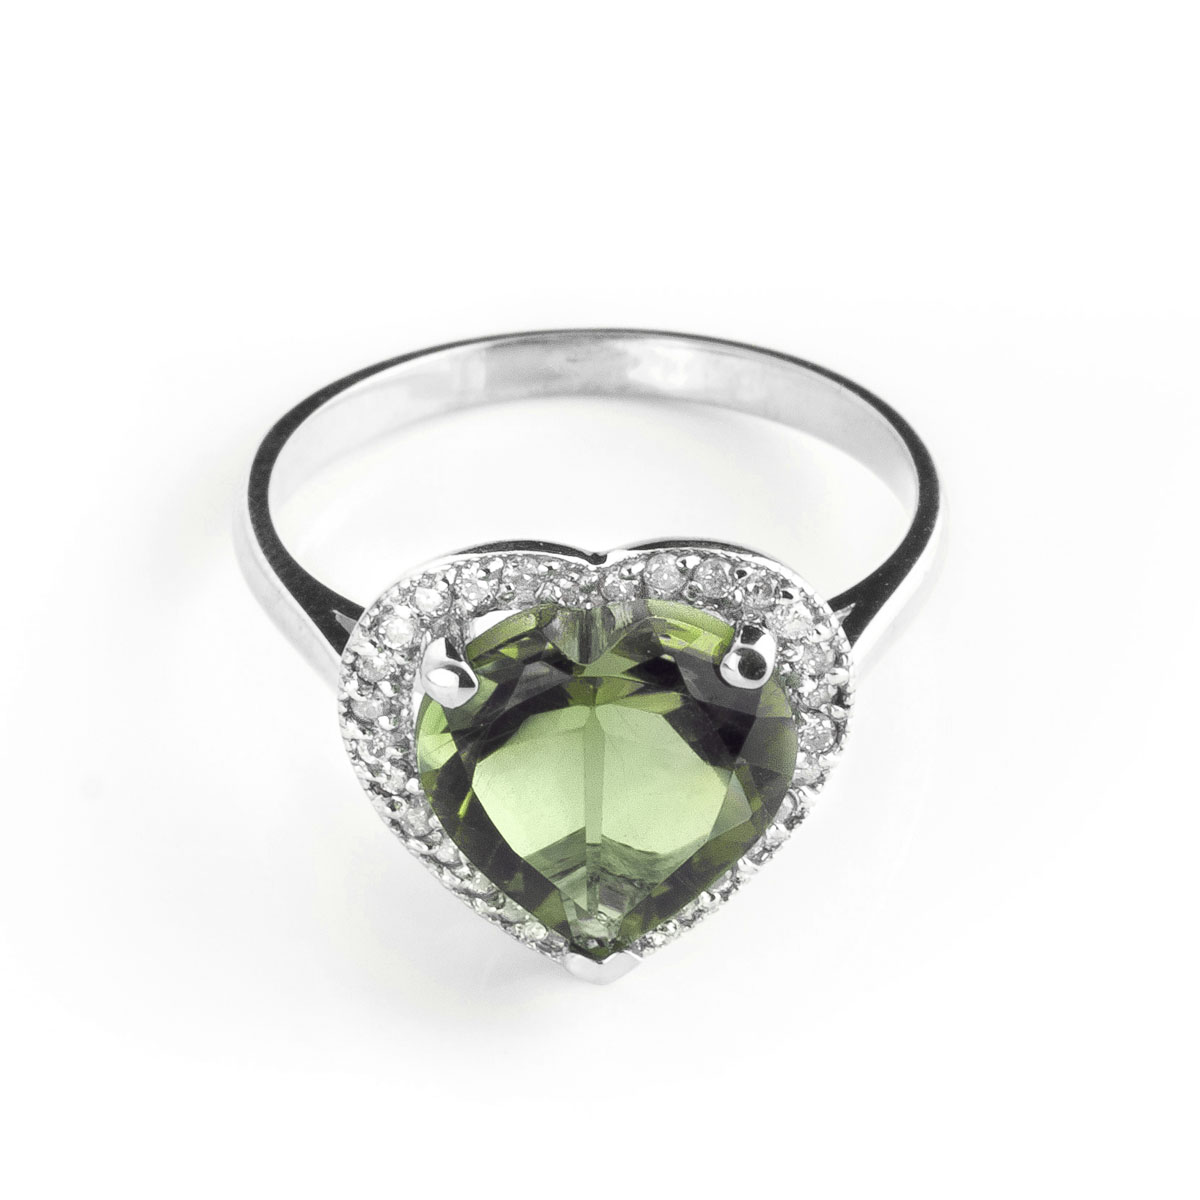 Green Amethyst Halo Ring 3.24 ctw in 9ct White Gold